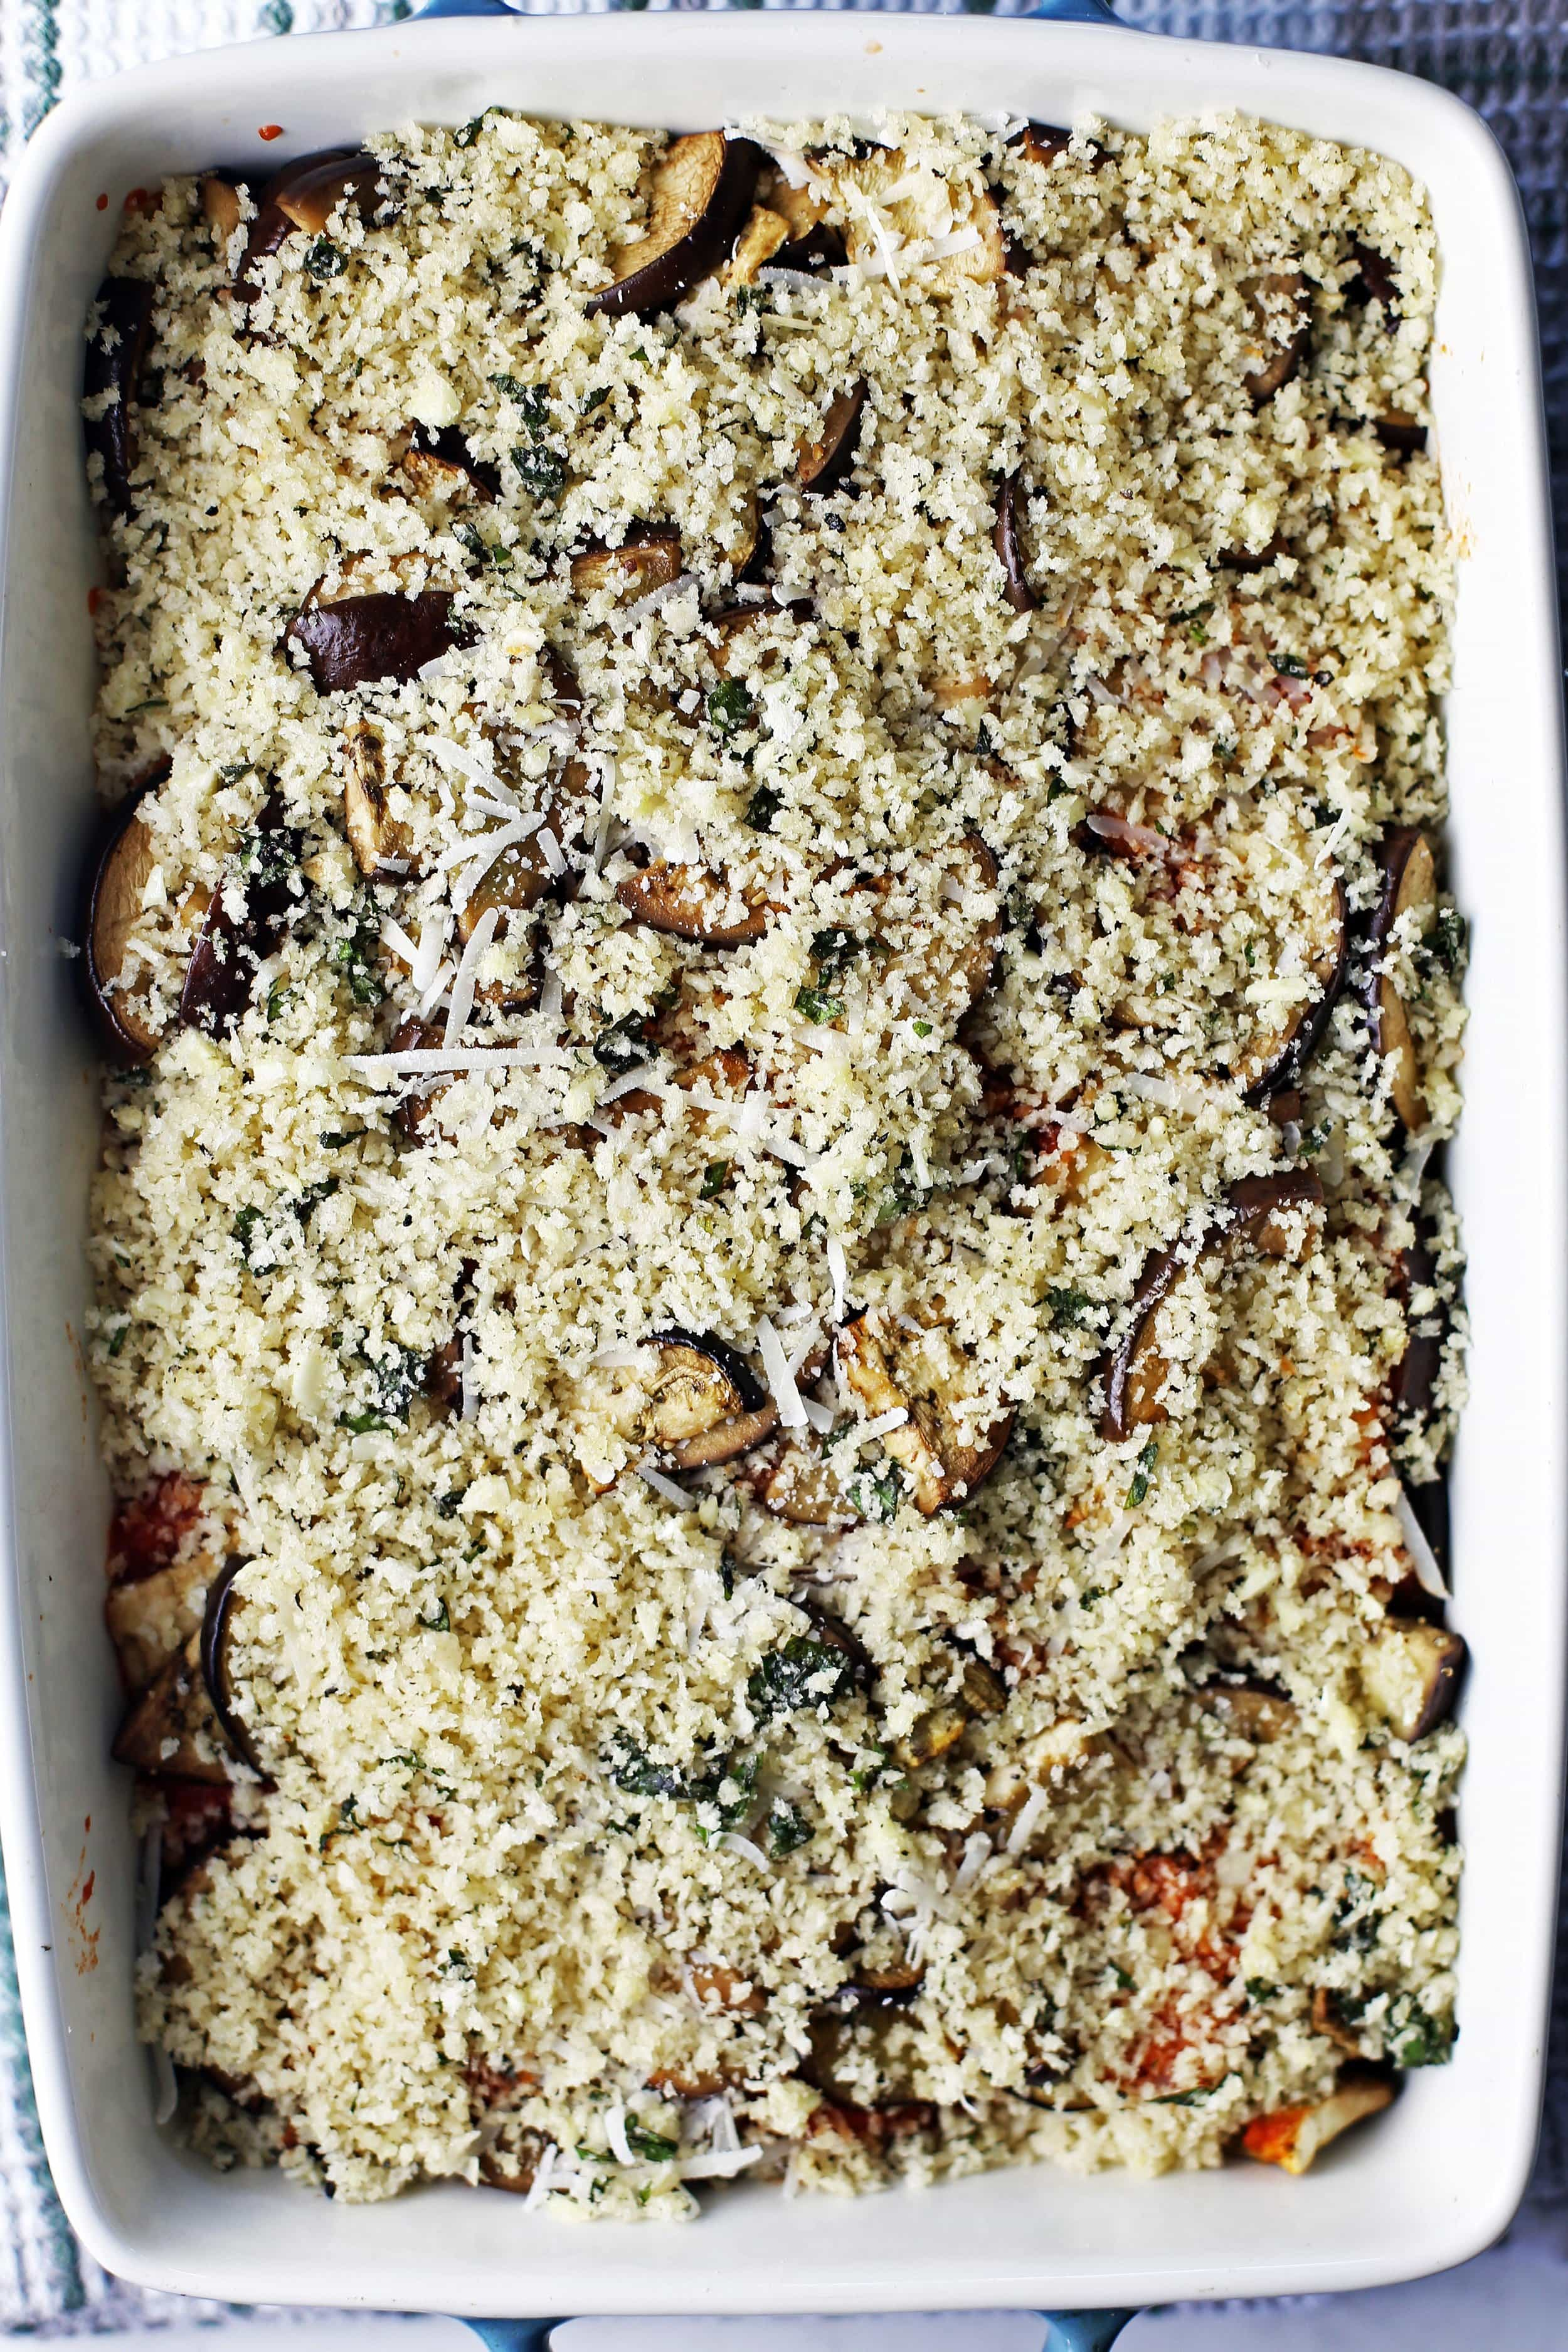 A large casserole dish containing three layers of marinara sauce, sliced eggplant, herbs, and cheeses with a breadcrumb topping.